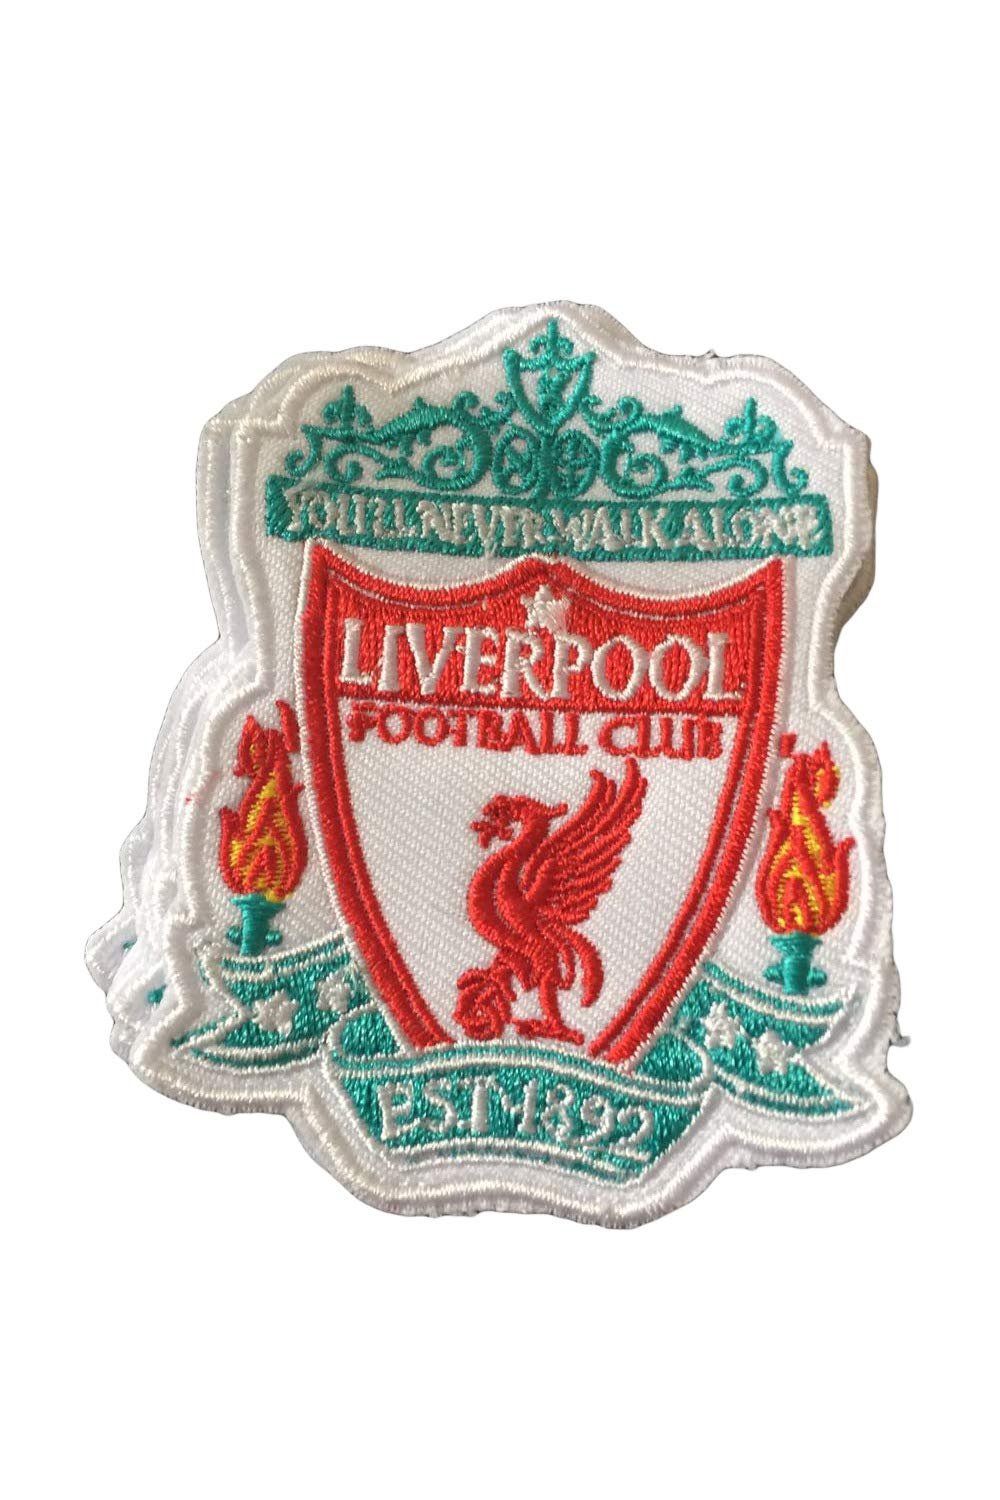 Liverpool Bird  Embroidered Iron On Sew On PatchBadge For Clothes Bags